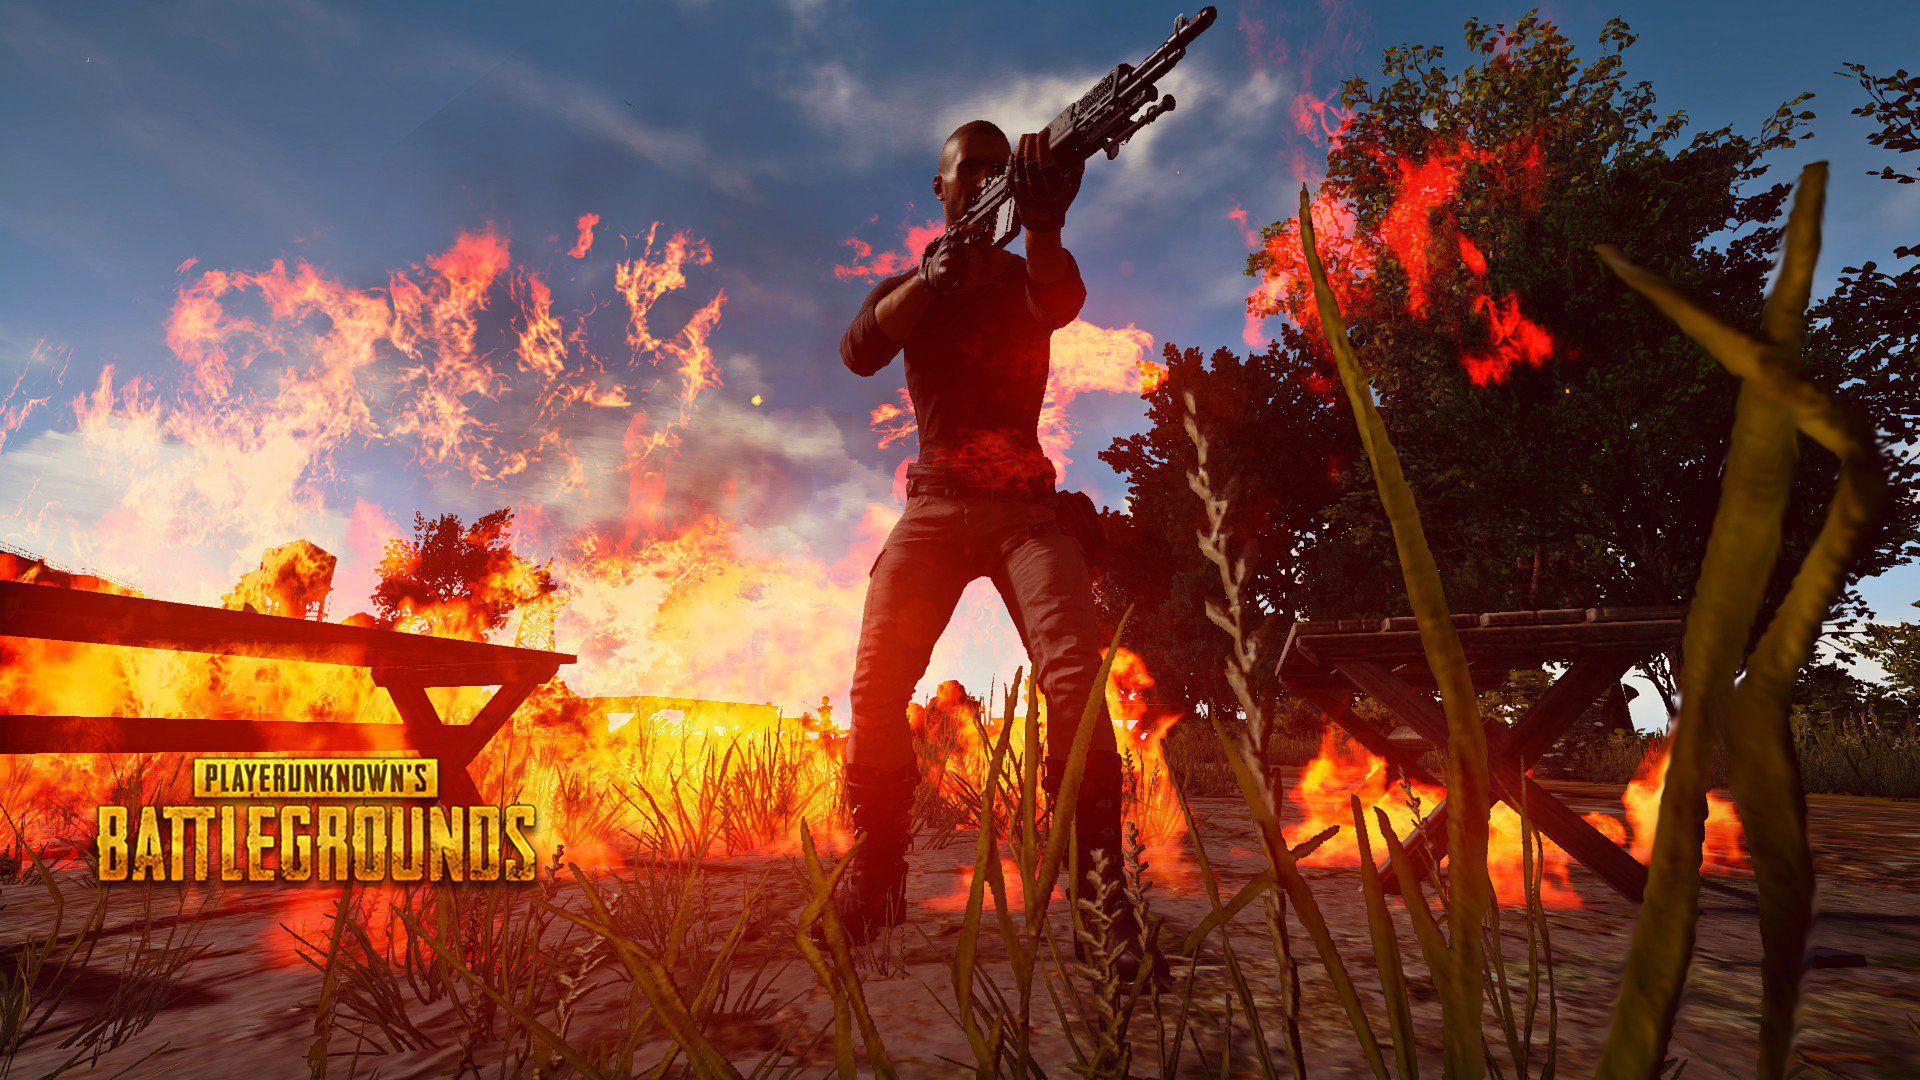 Pubg Hd For Pc: PlayerUnknown's Battlegrounds: PUBG Wallpapers And Photos